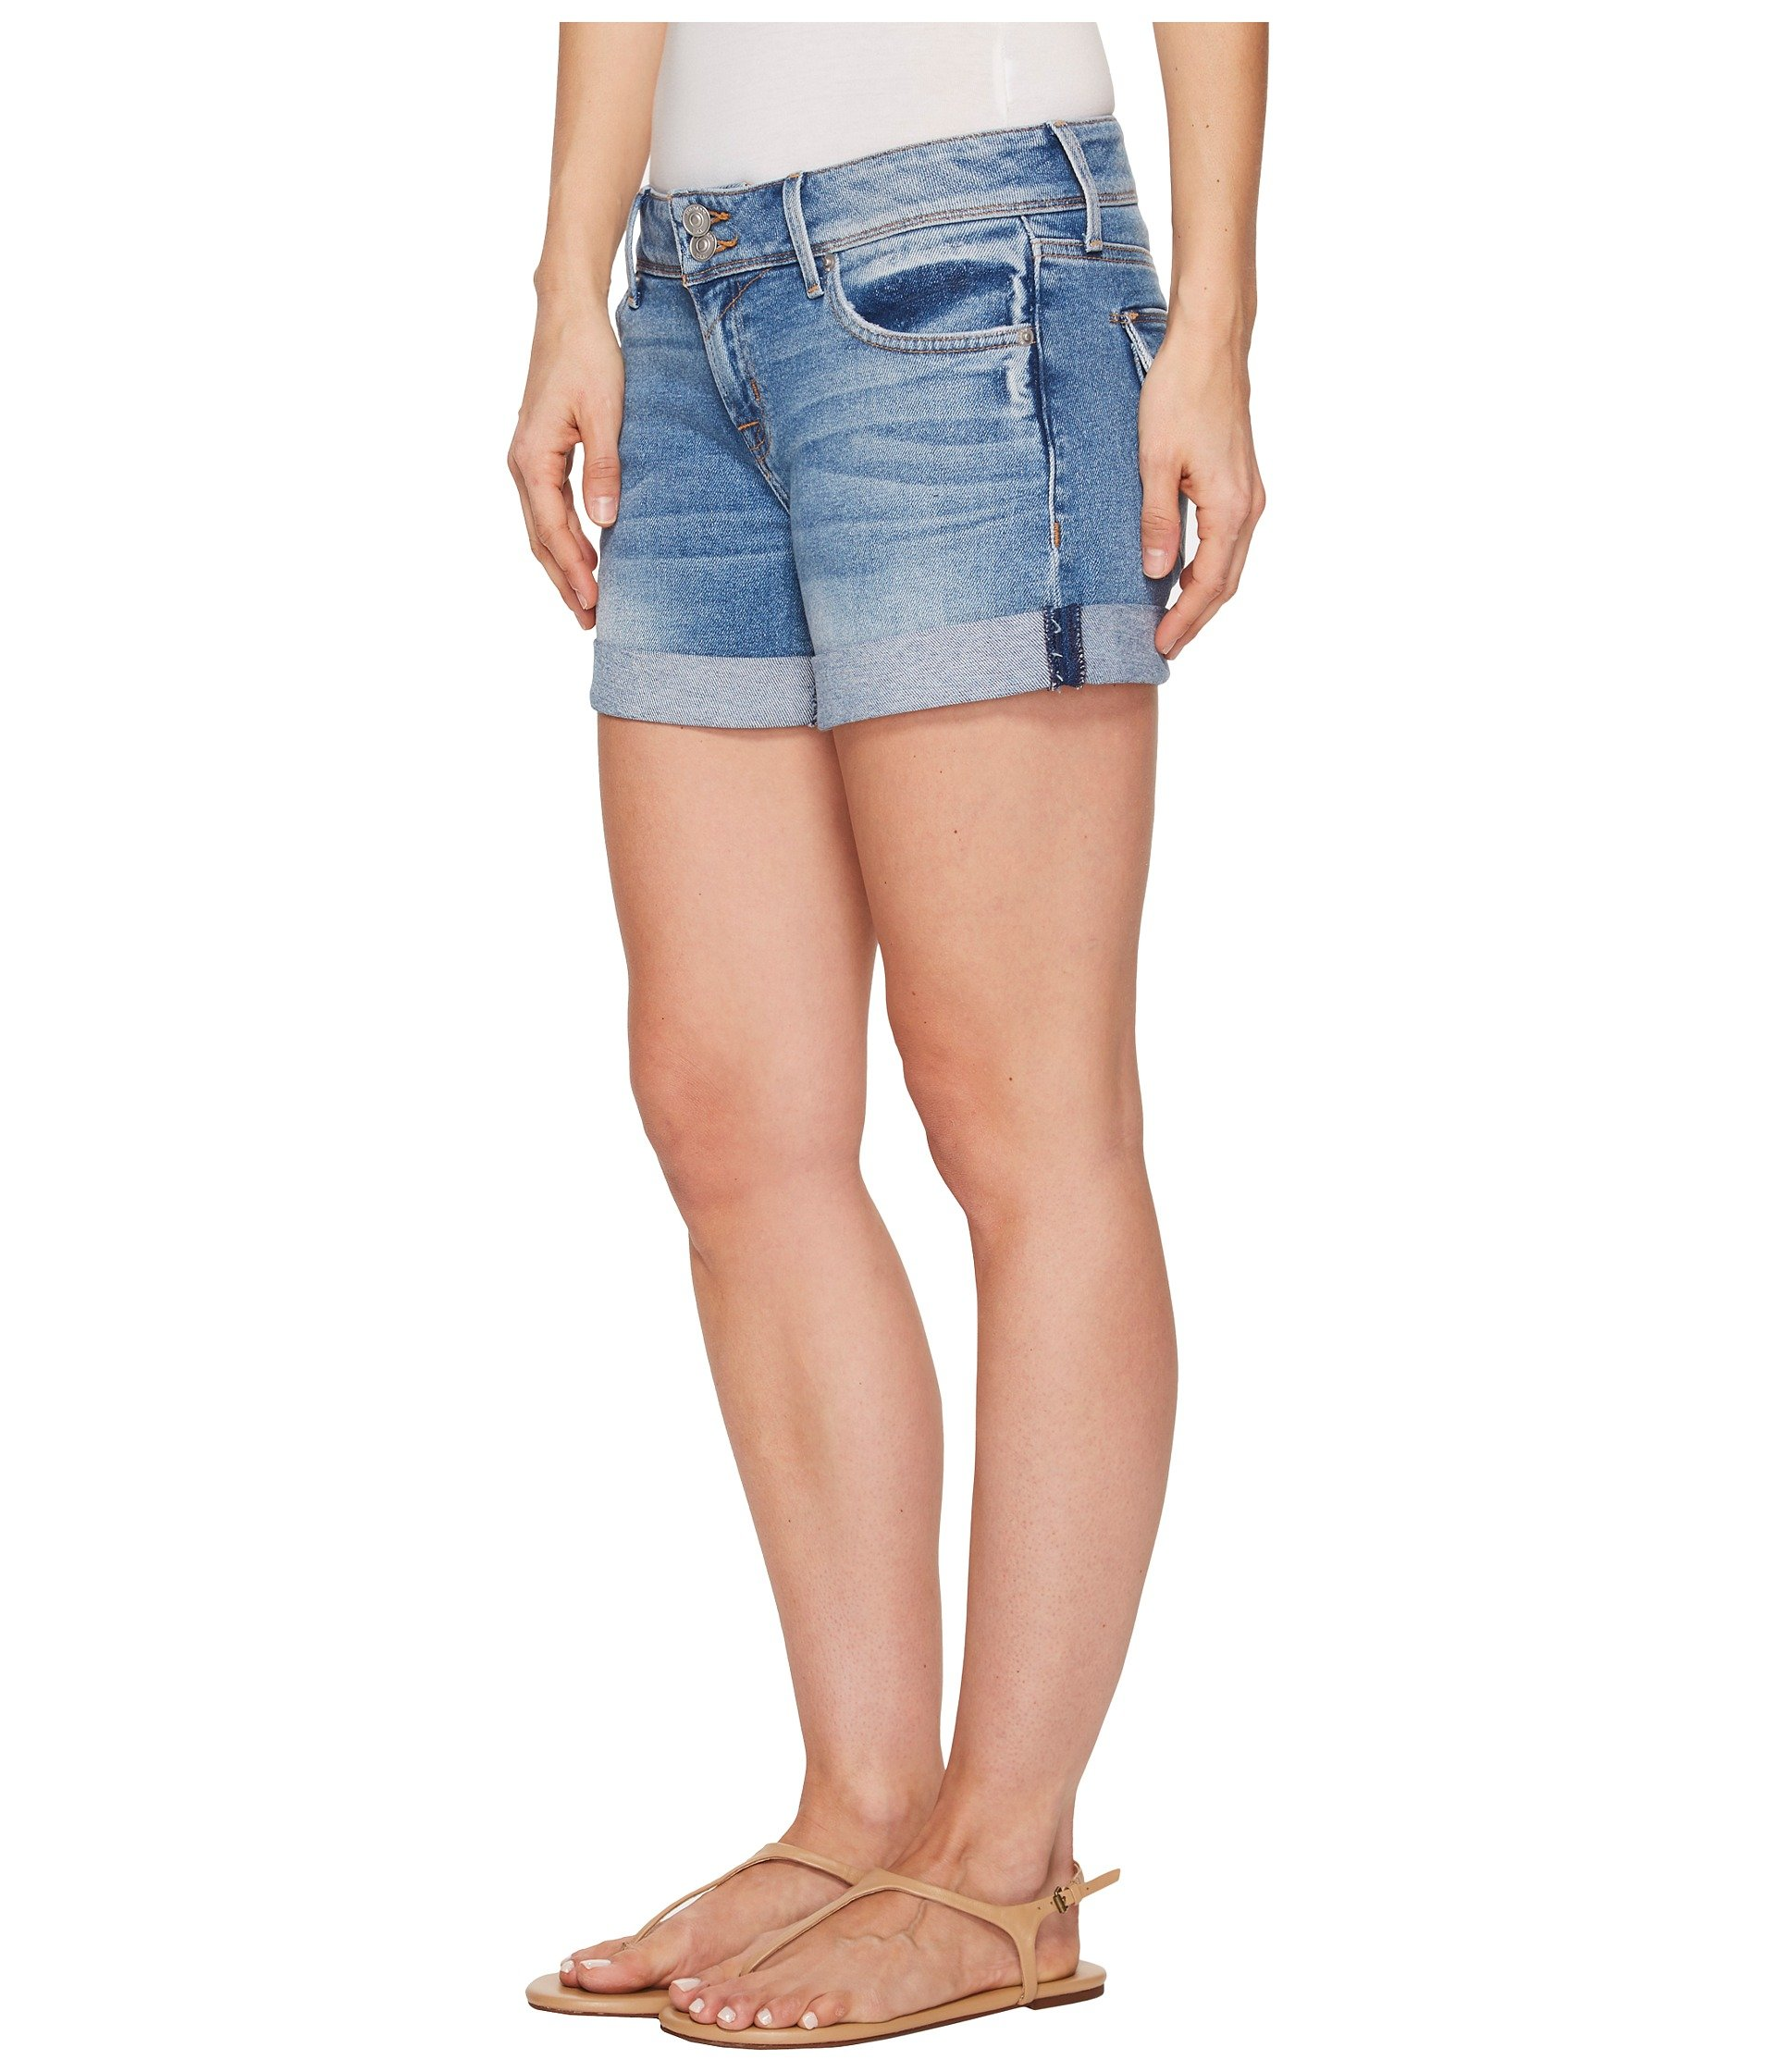 Hudson Jeans Women's Croxley Mid Thigh Flap Pocket Short, Rolling Hills, 31 by Hudson Jeans (Image #3)